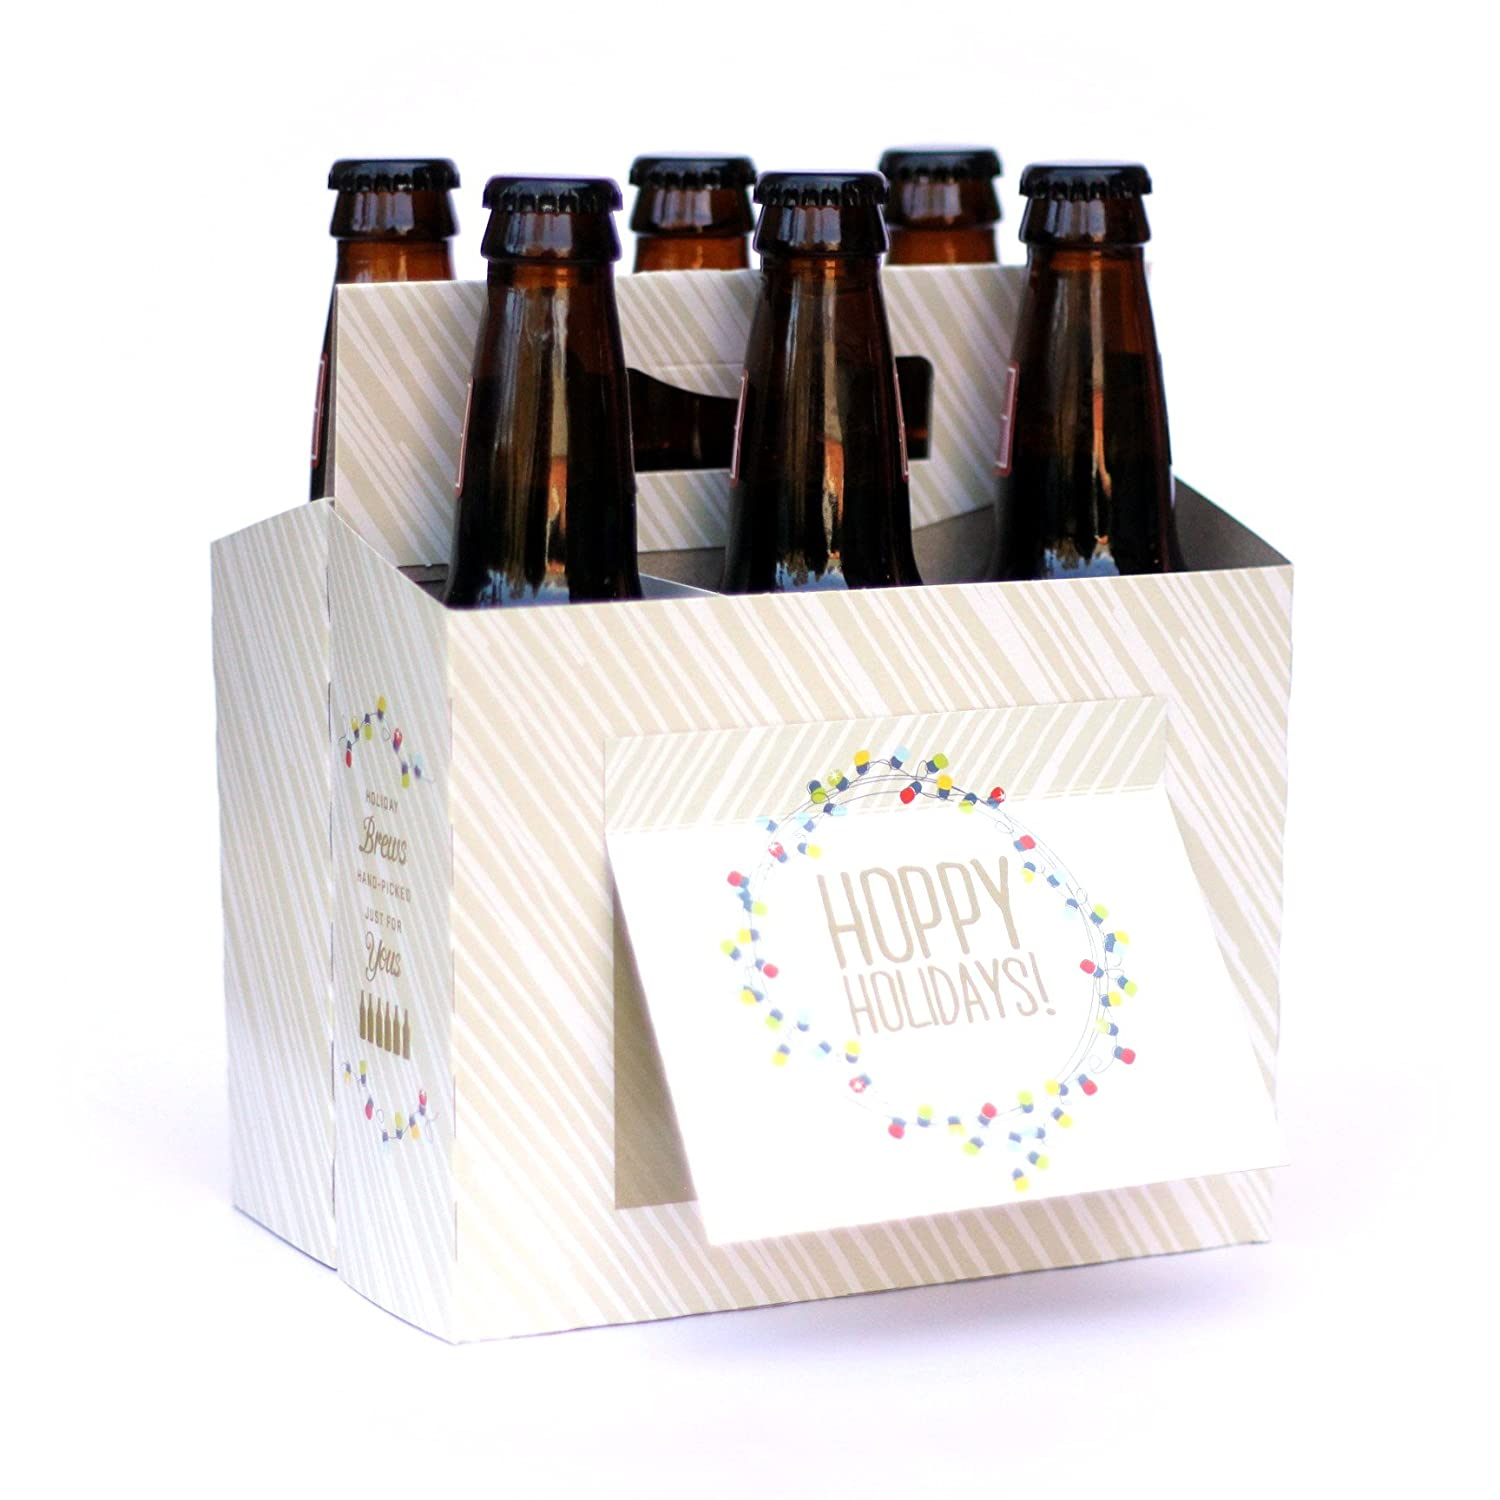 Amazon holiday beer gifts 6 pack beer holder greeting card amazon holiday beer gifts 6 pack beer holder greeting card set of 4 in festive holiday lights design awesome for use as christmas party hostess kristyandbryce Images